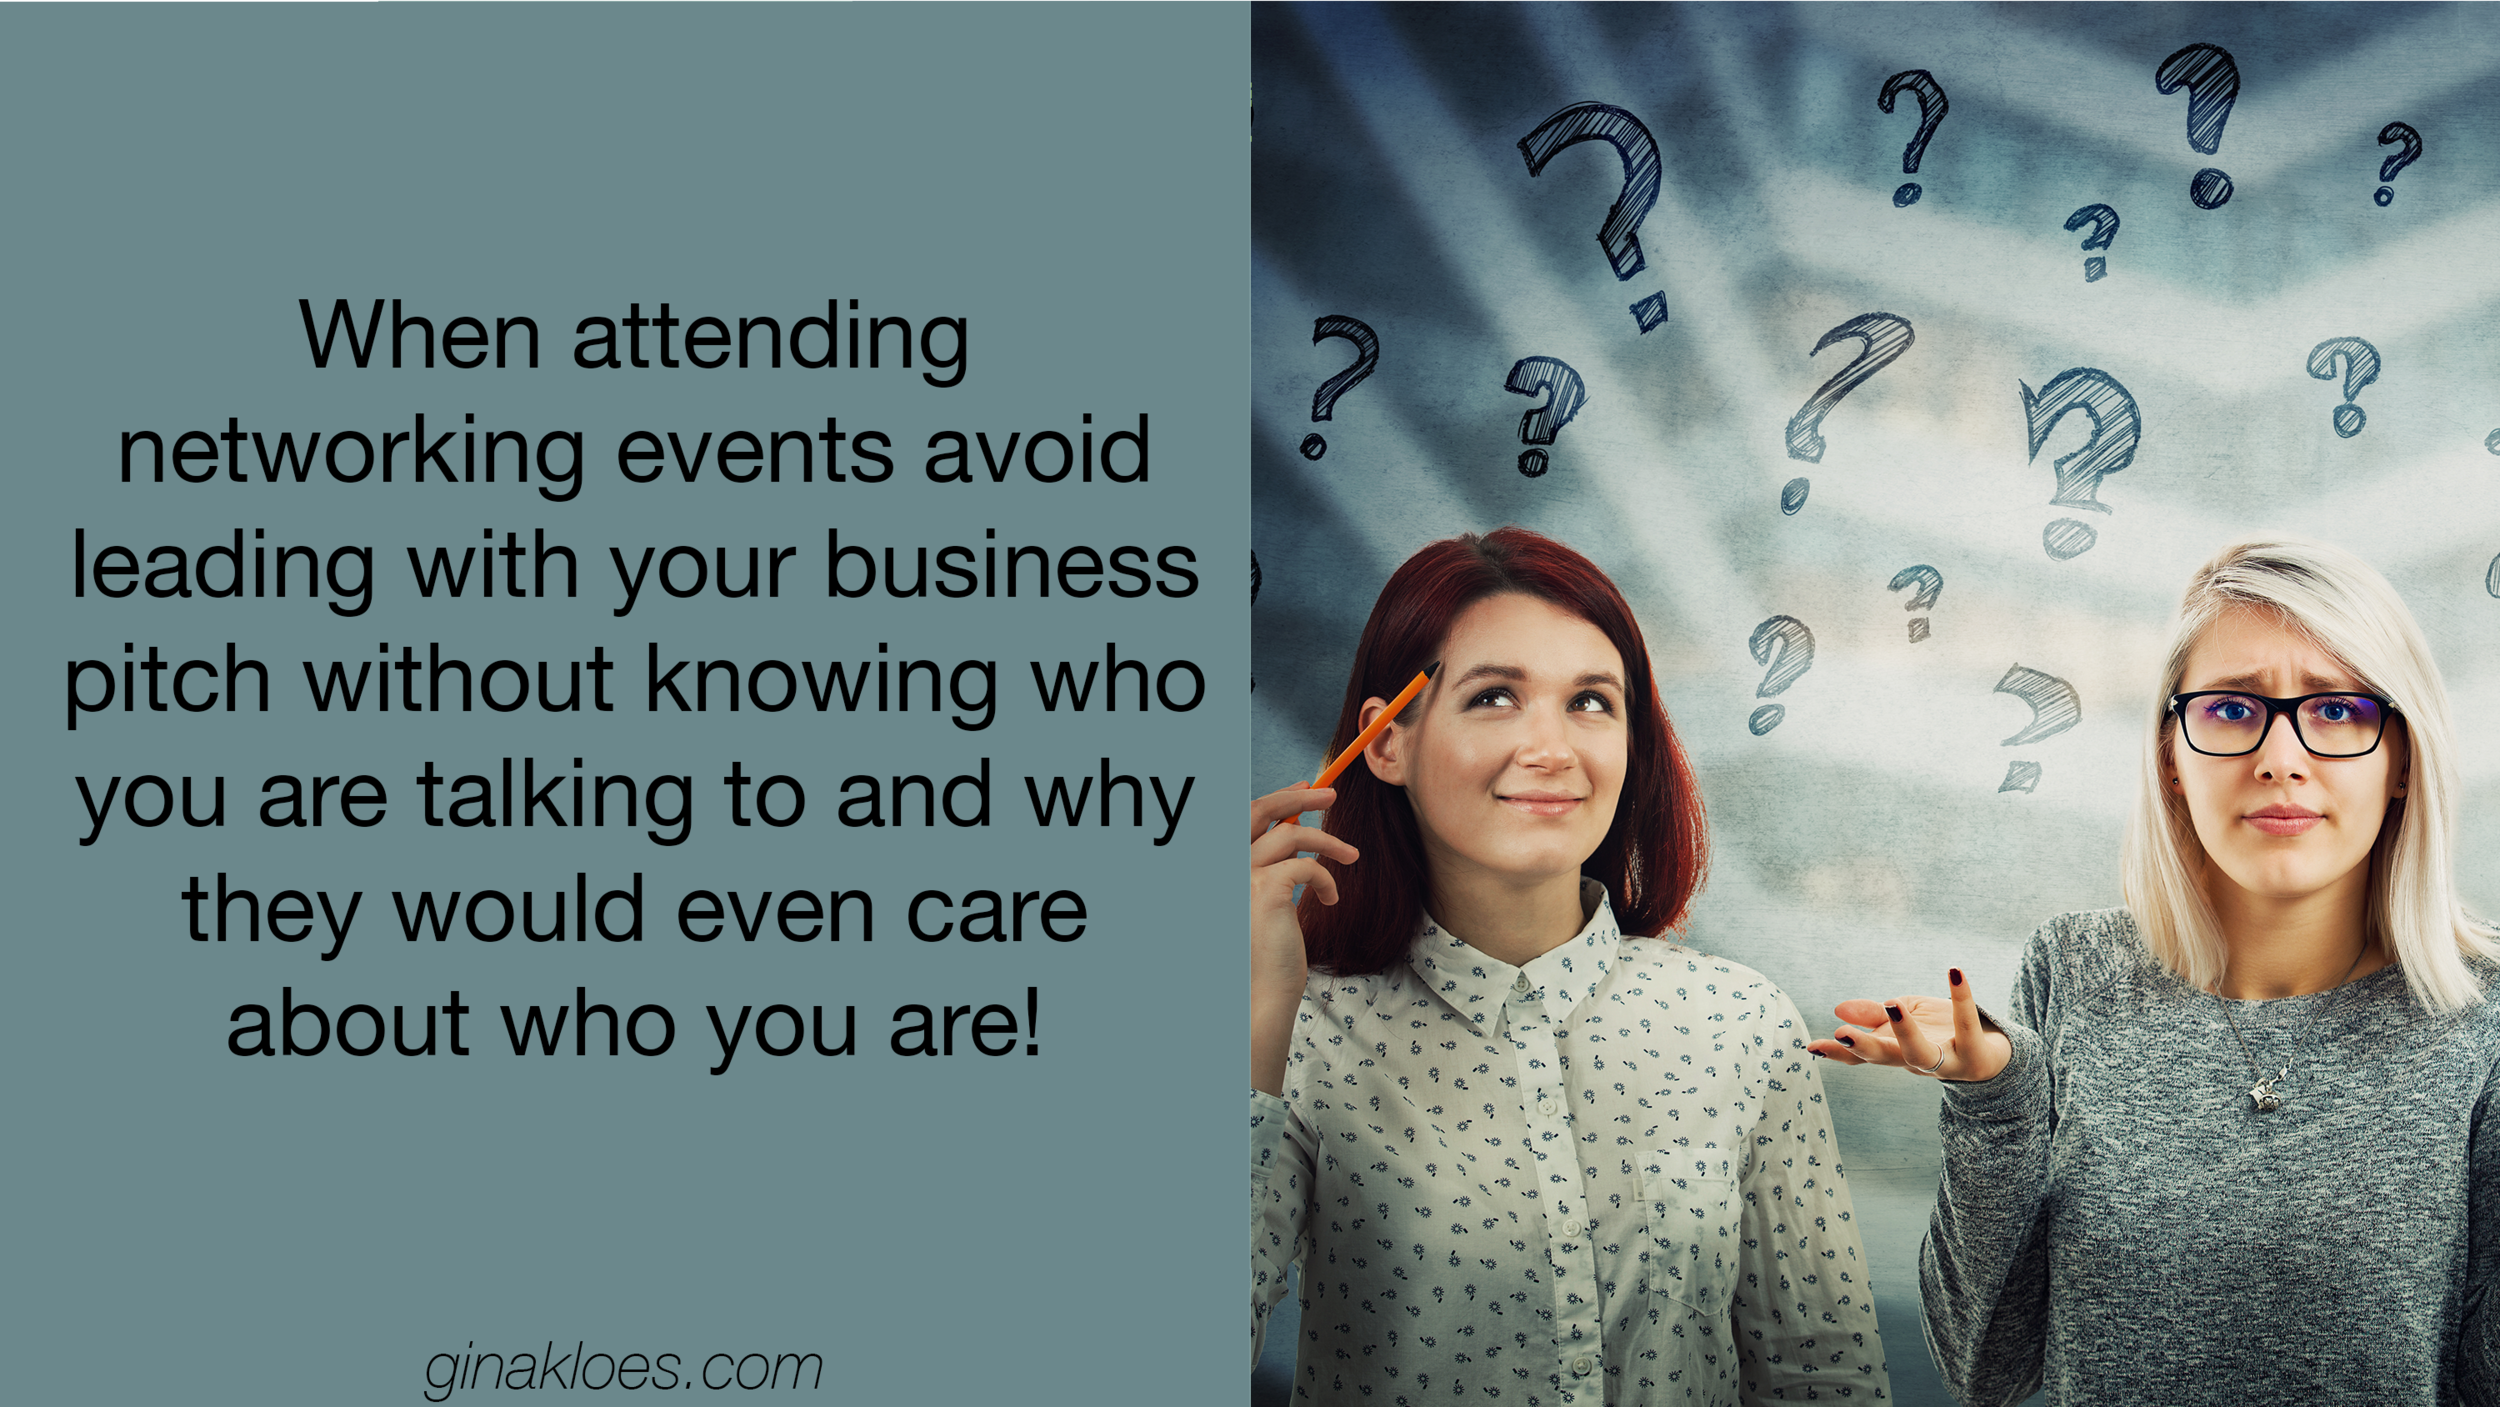 Gina Kloes - Networking Events P1 - Blog Images.png